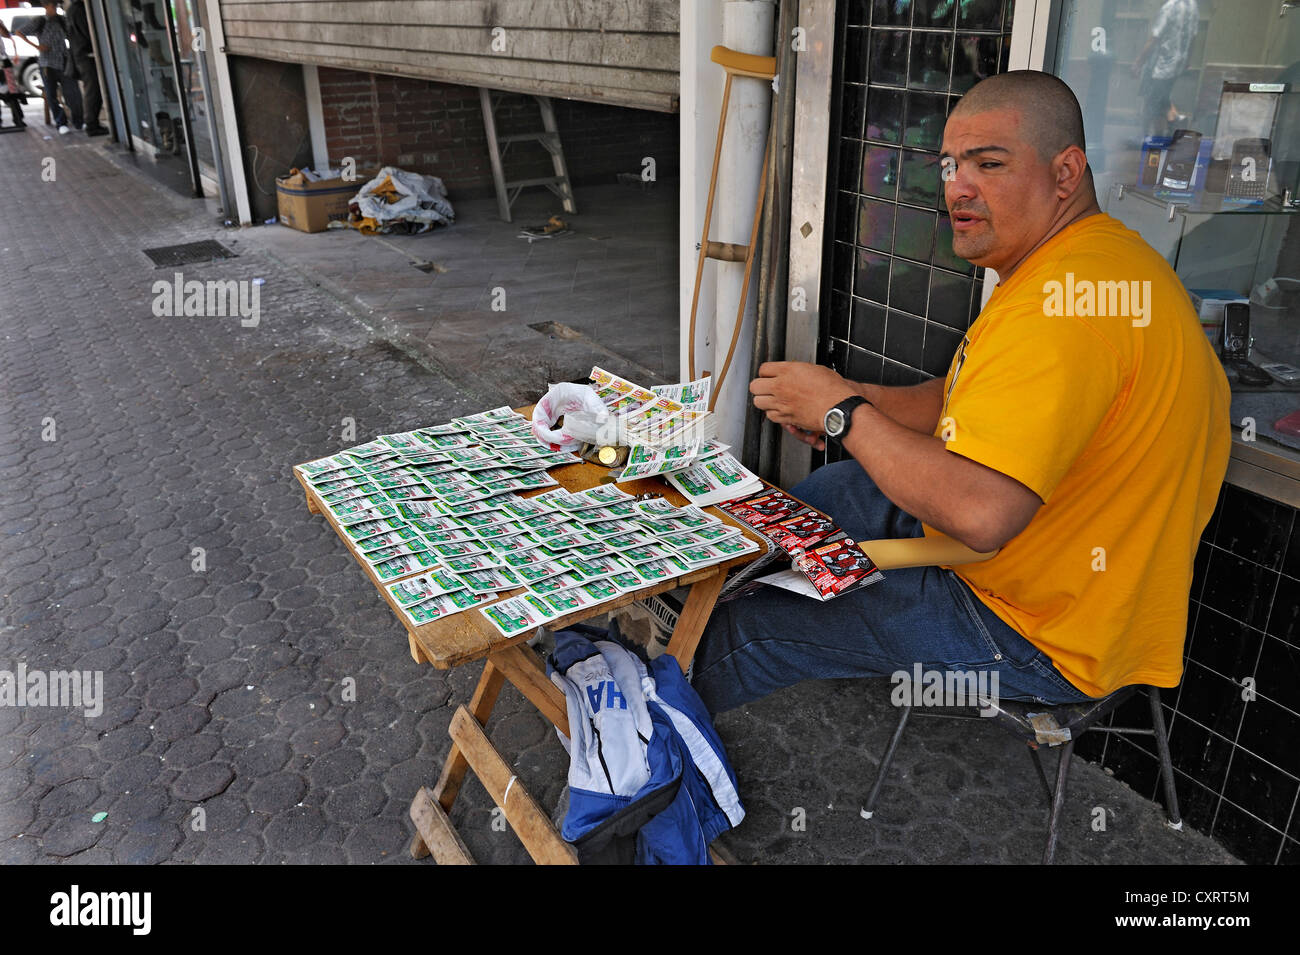 Ticket seller, San Jose, Costa Rica, Central America - Stock Image